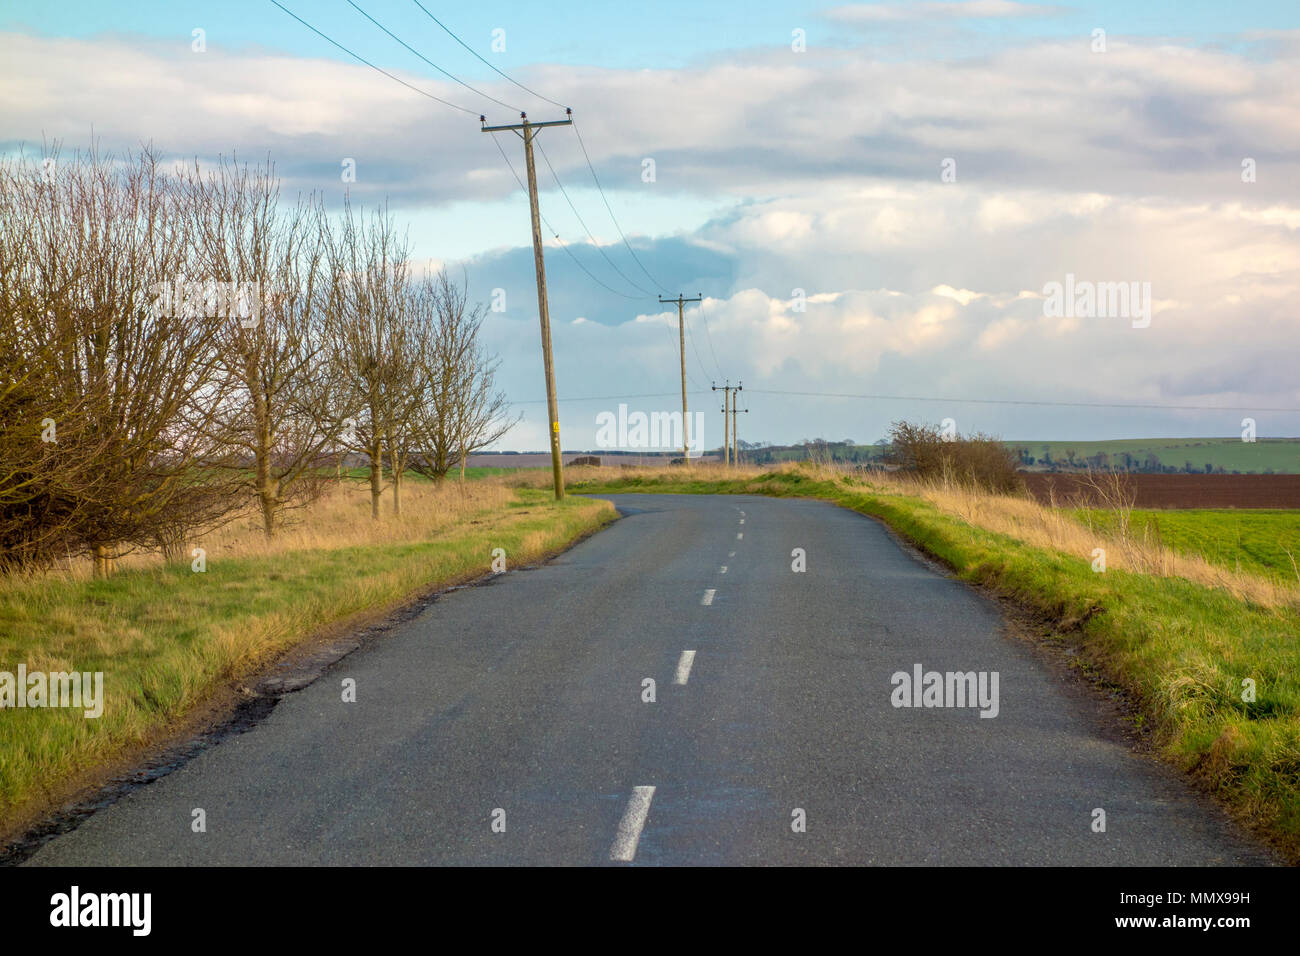 Typical empty British country lane, countryside road with telegraph poles - Stock Image